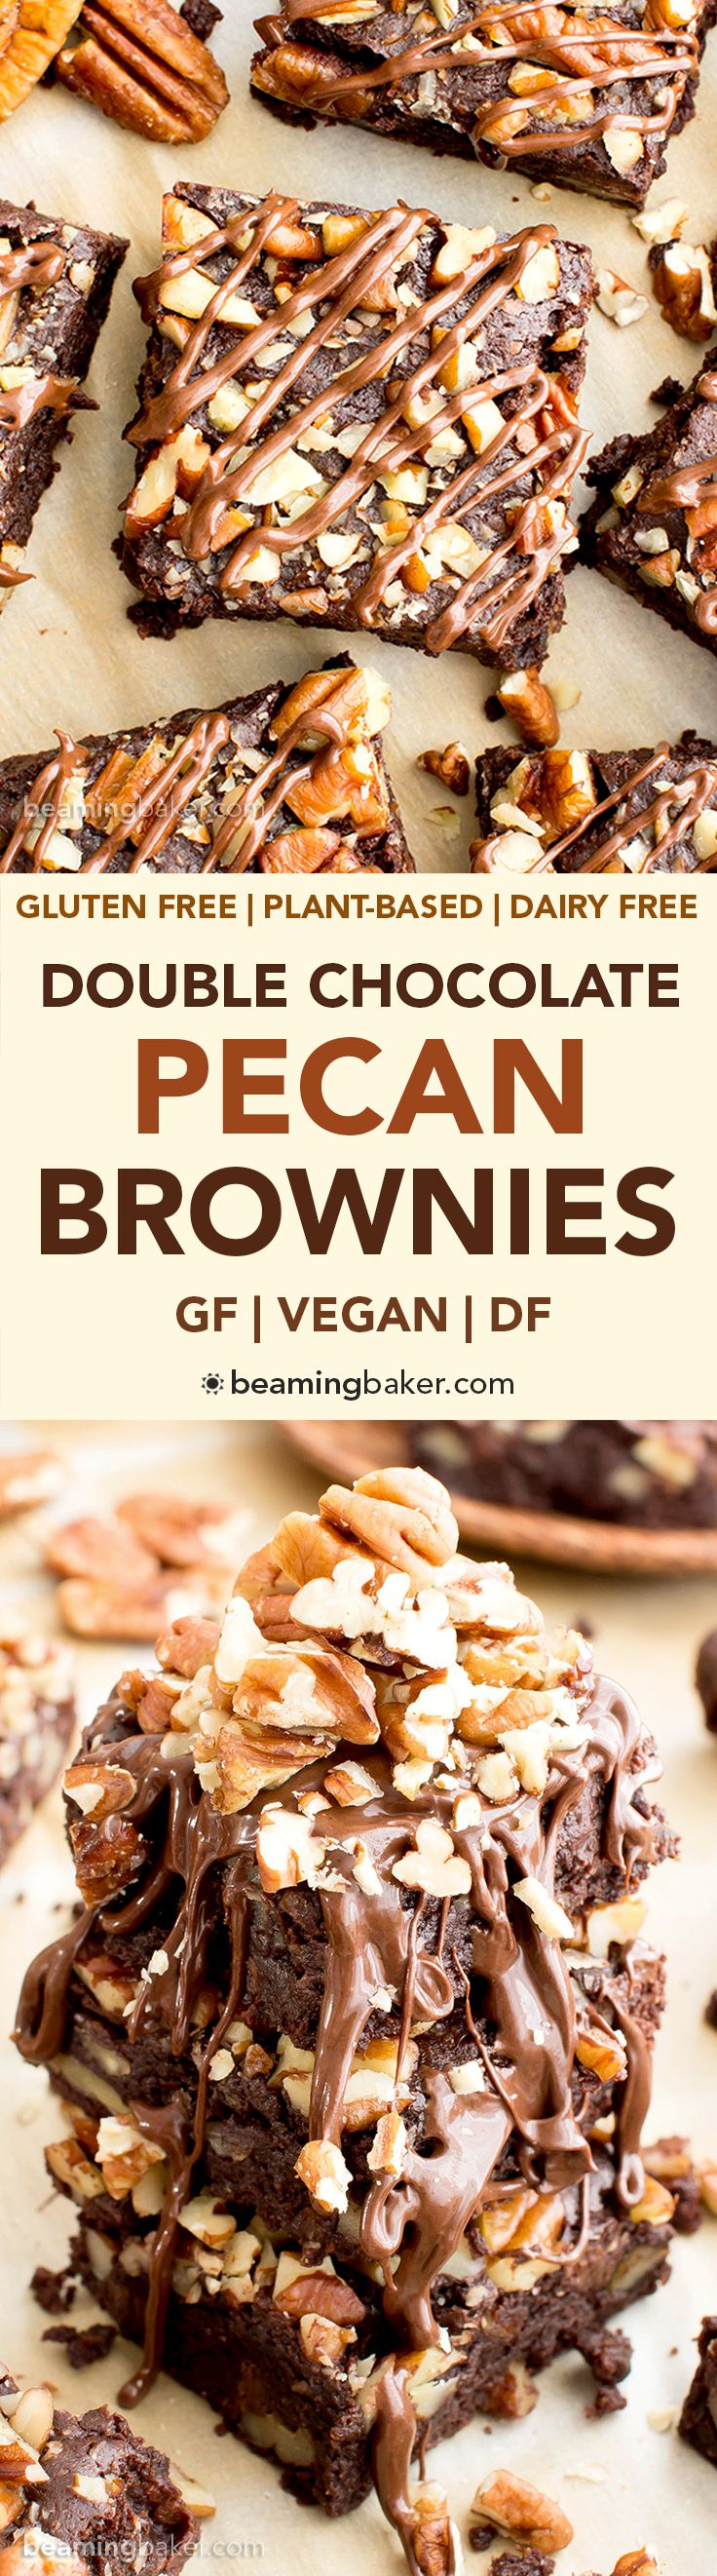 Double Chocolate Pecan Brownies (V, GF, DF): an easy recipe for rich, fudgy brownies packed with pecans and chocolate drizzle. #Vegan #GlutenFree #DairyFree   BeamingBaker.com